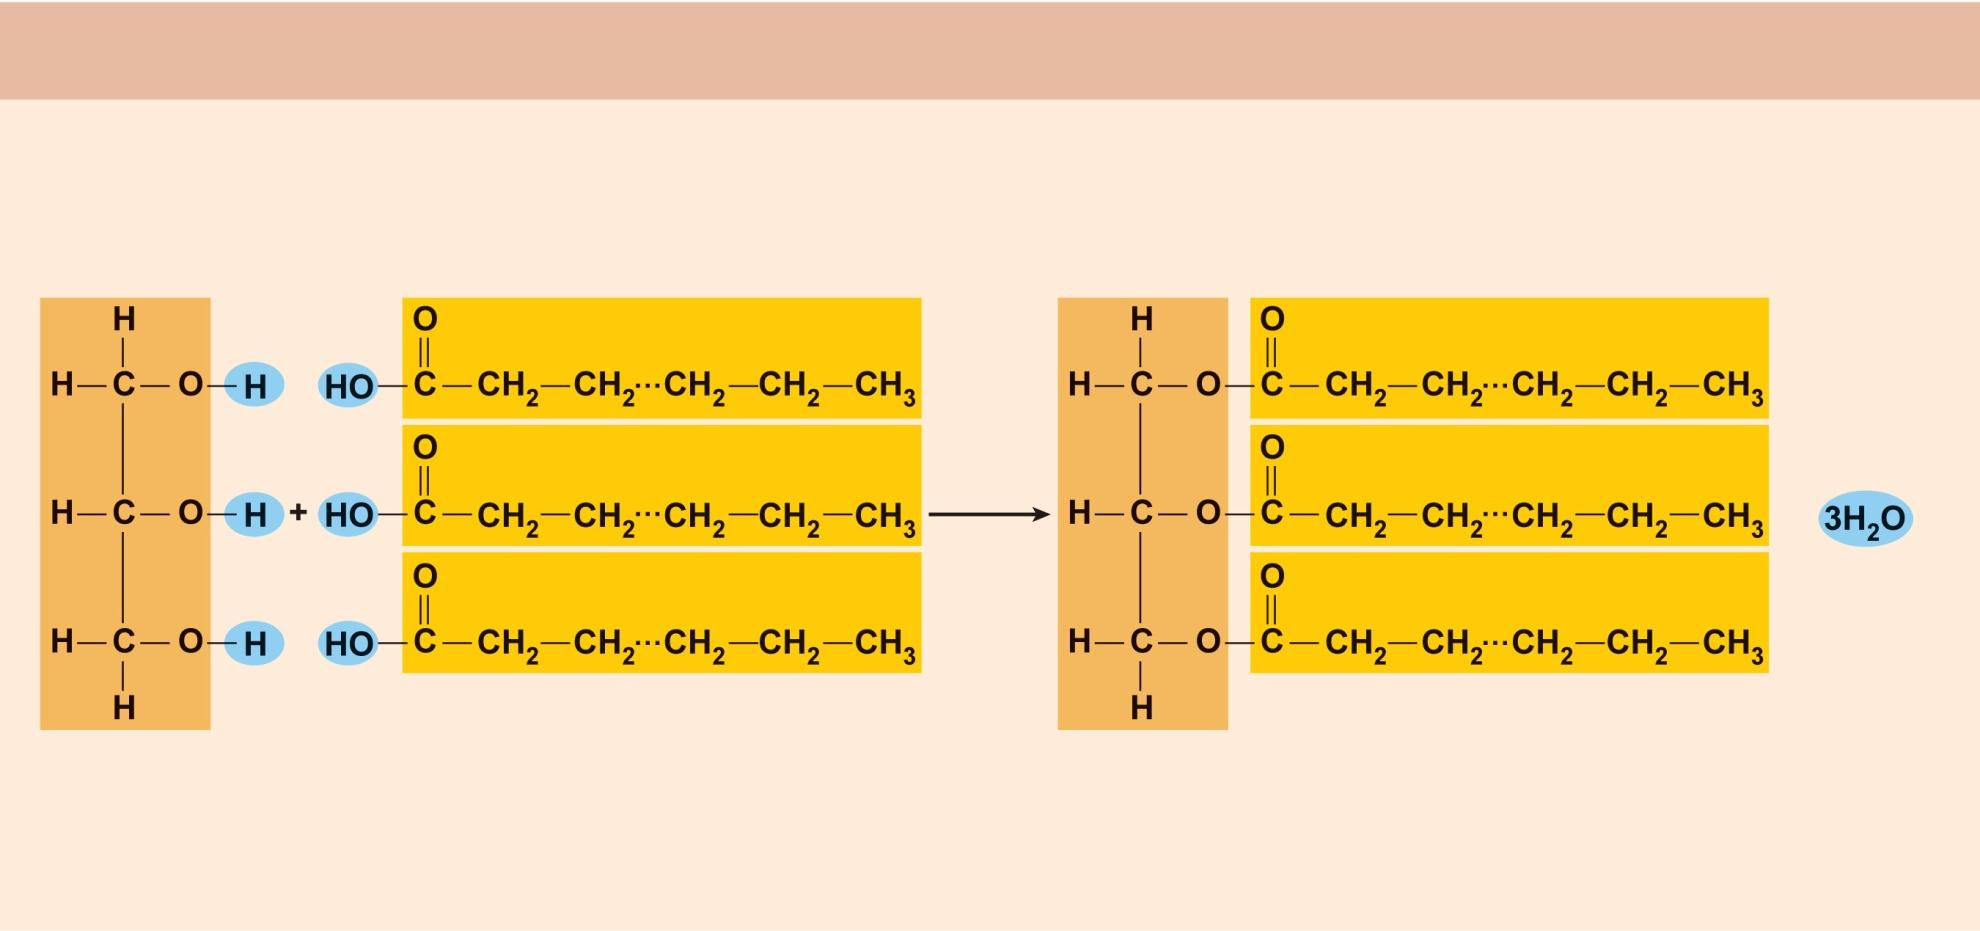 (a) Triglyceride formation Three fatty acid chains are bound to glycerol by dehydration